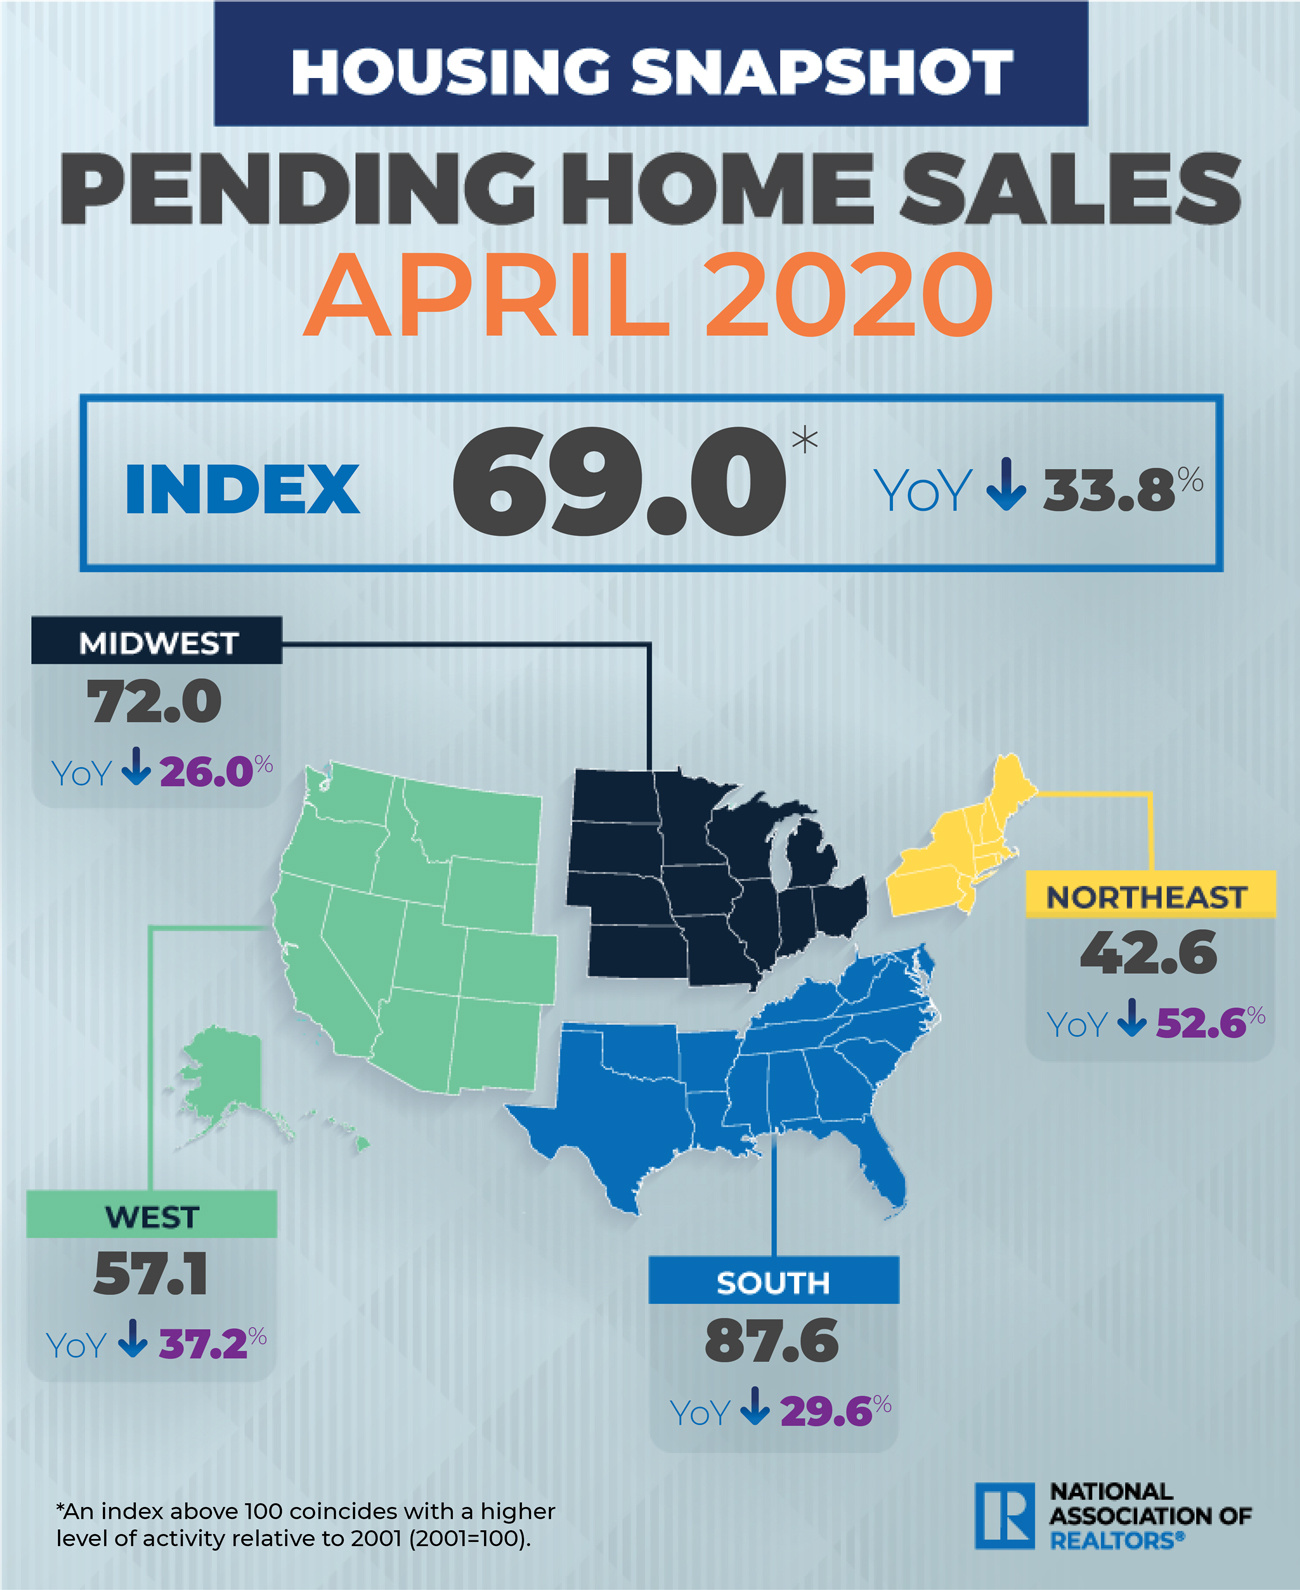 NAR Pending home sales Apr. 2020. Visit source link at the end of this article for more information.